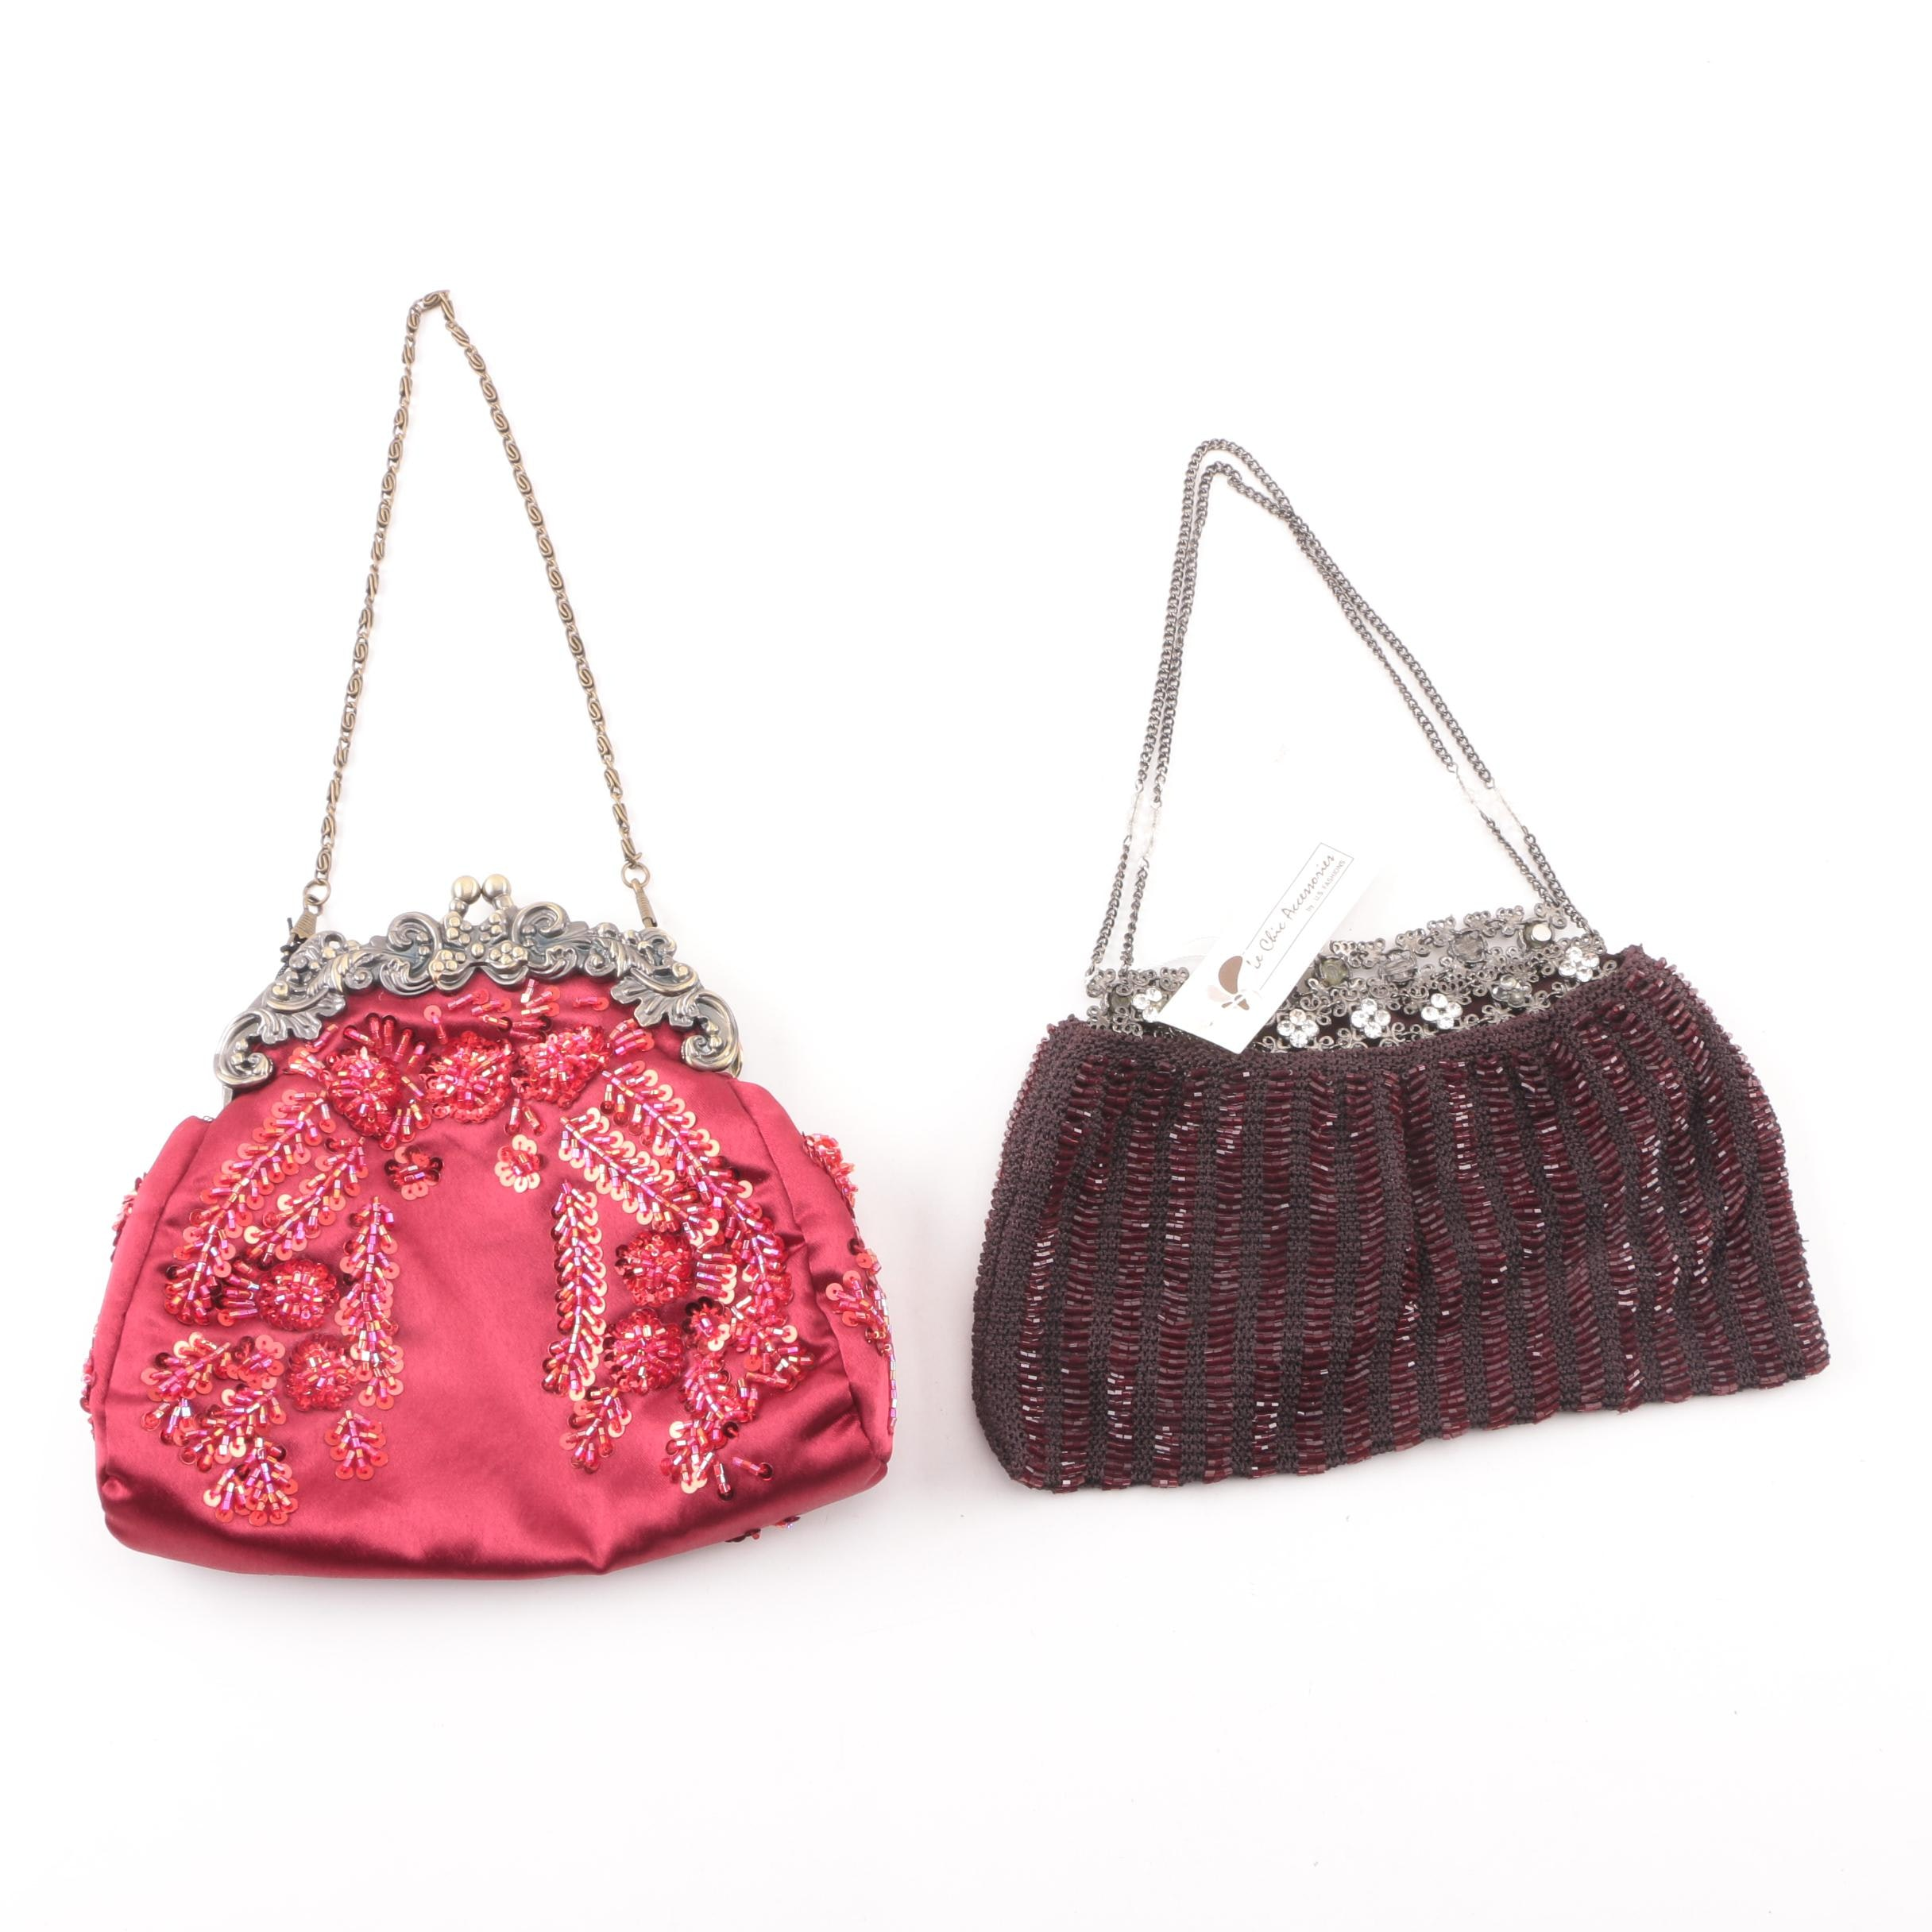 Mad Bags and Le Chic Accessories by U.S. Fashions Embellished Evening Bags